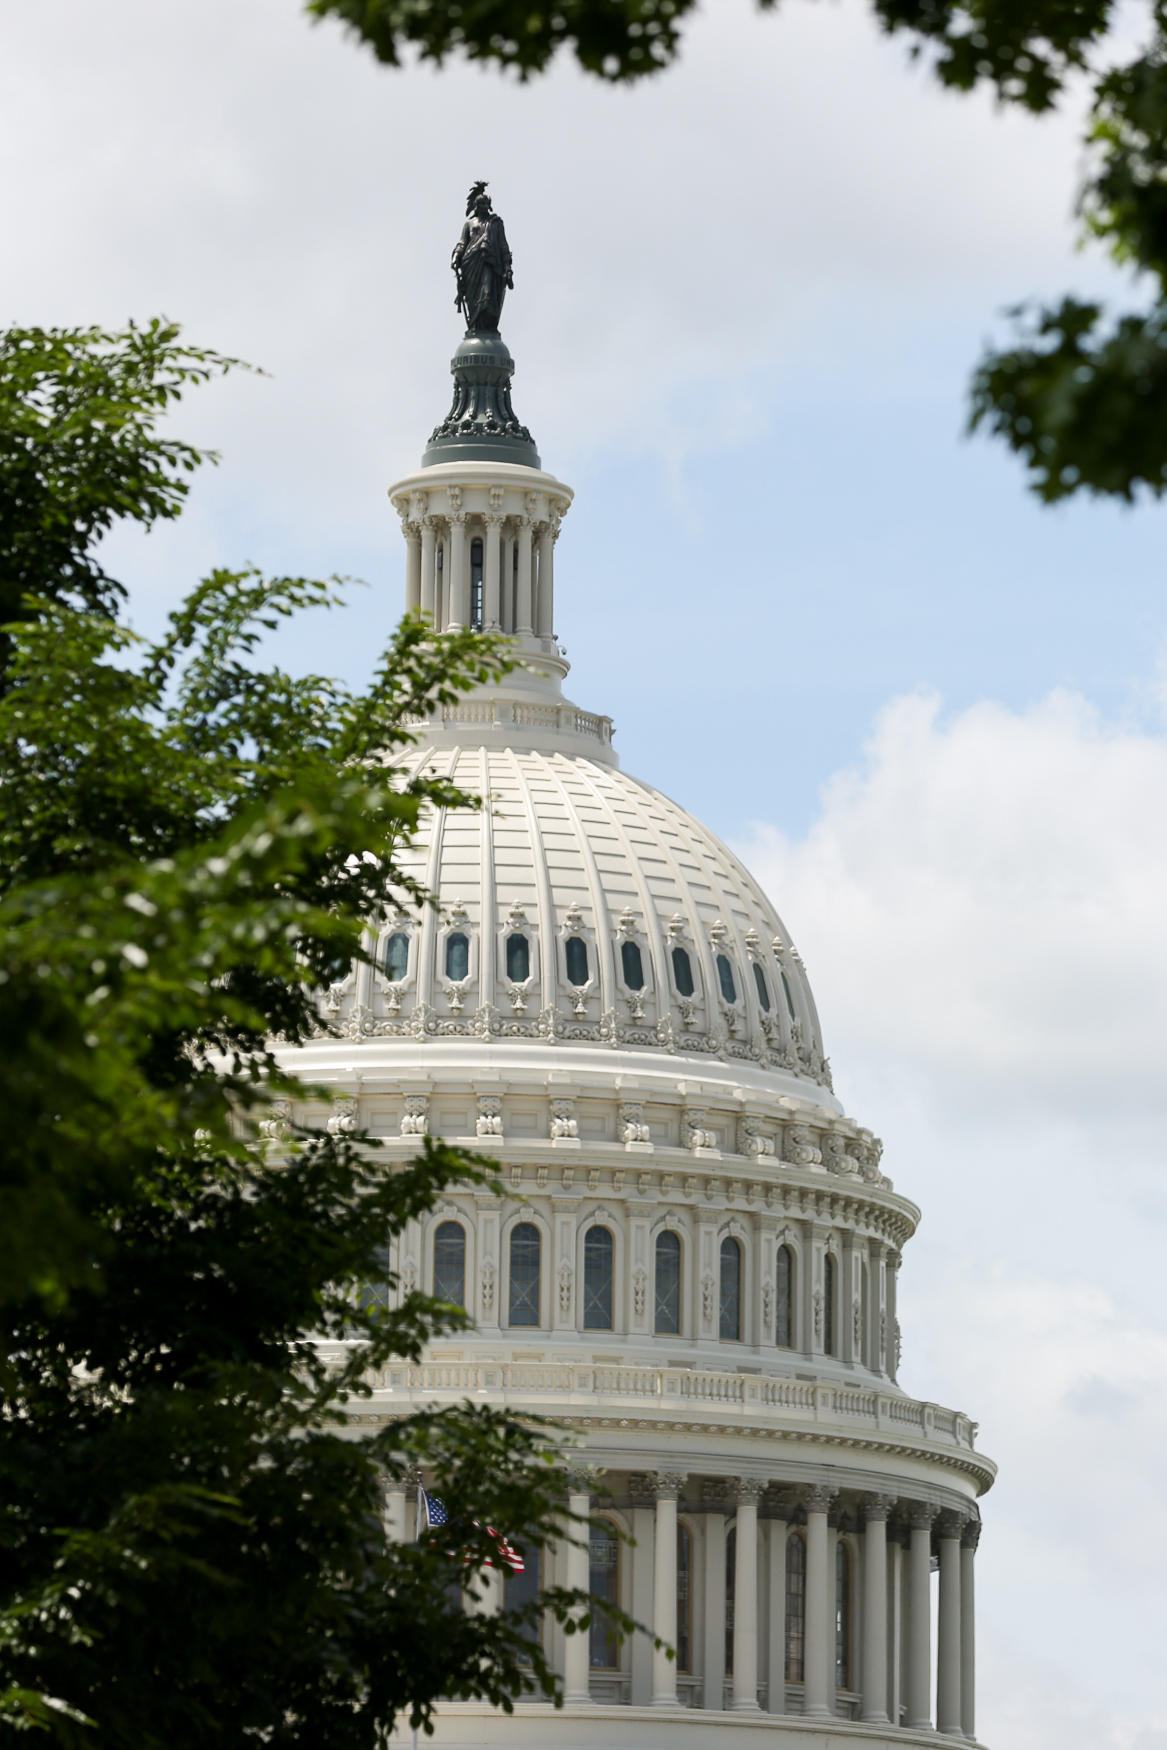 Fun fact! The cast iron used in the Capitol Dome weighs{ }8,909,200 pounds.{ }